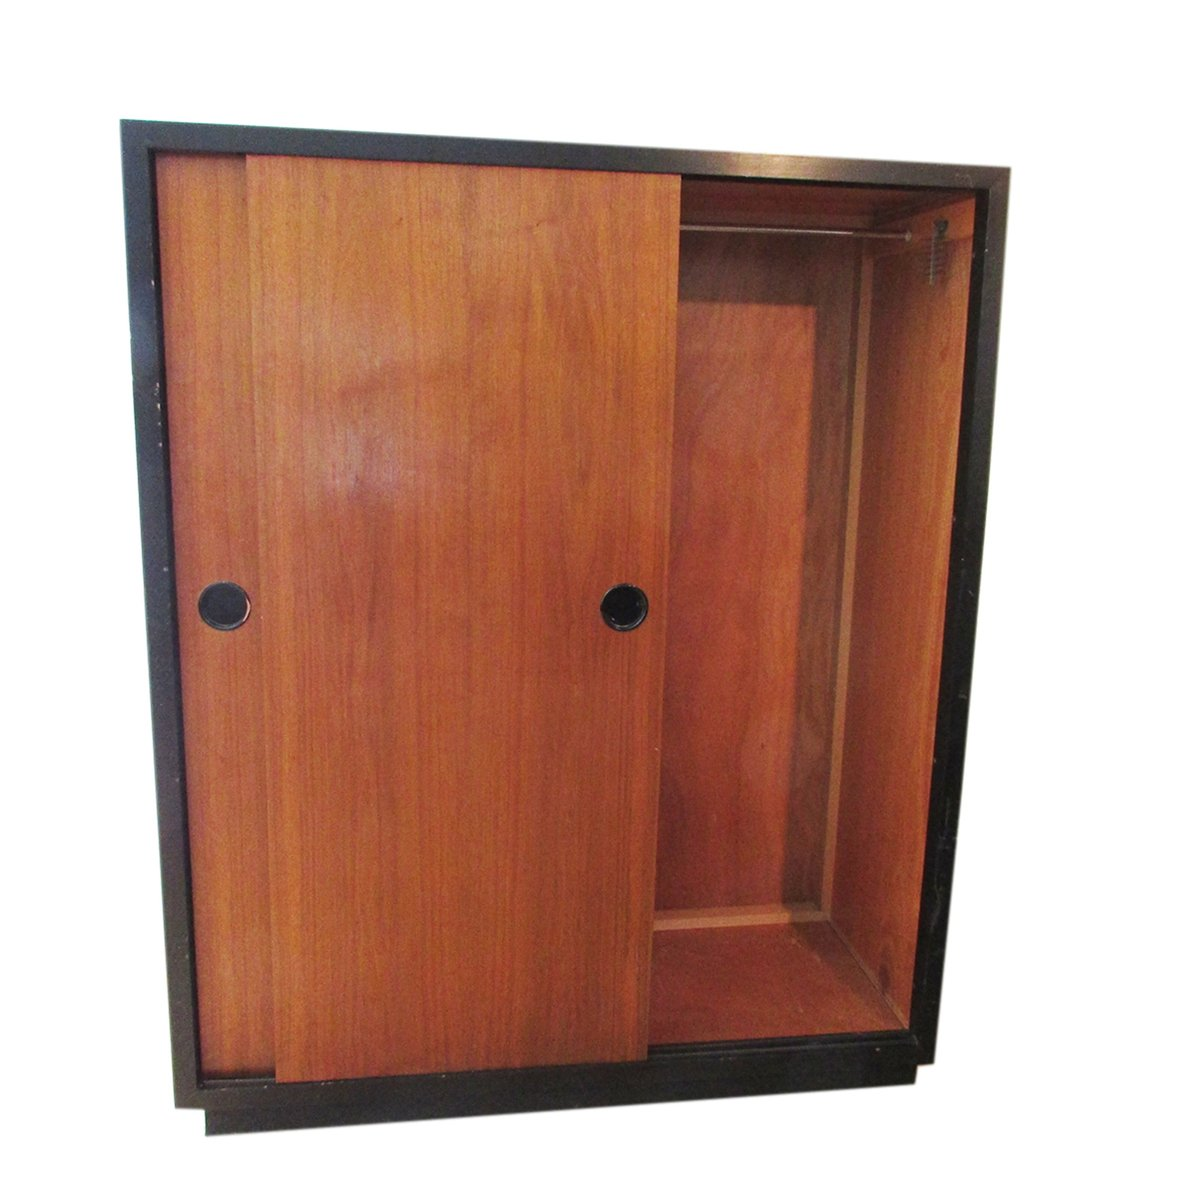 Swiss Teak Armoire with Sliding Doors by Kurt Thut 1950s for sale